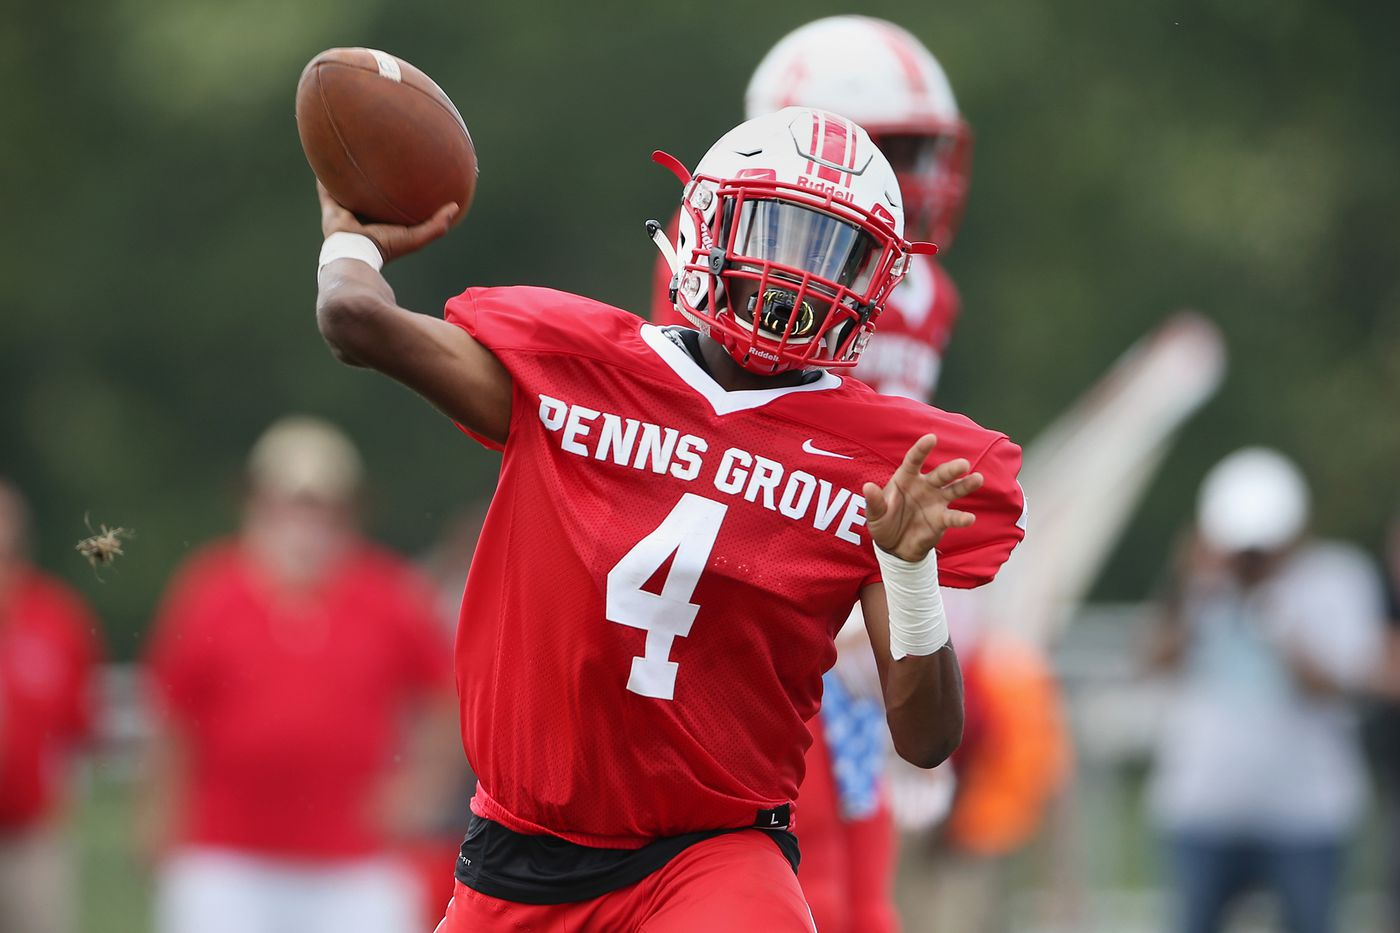 Saturday's South Jersey roundup: Penns Grove football gets revenge against Paulsboro